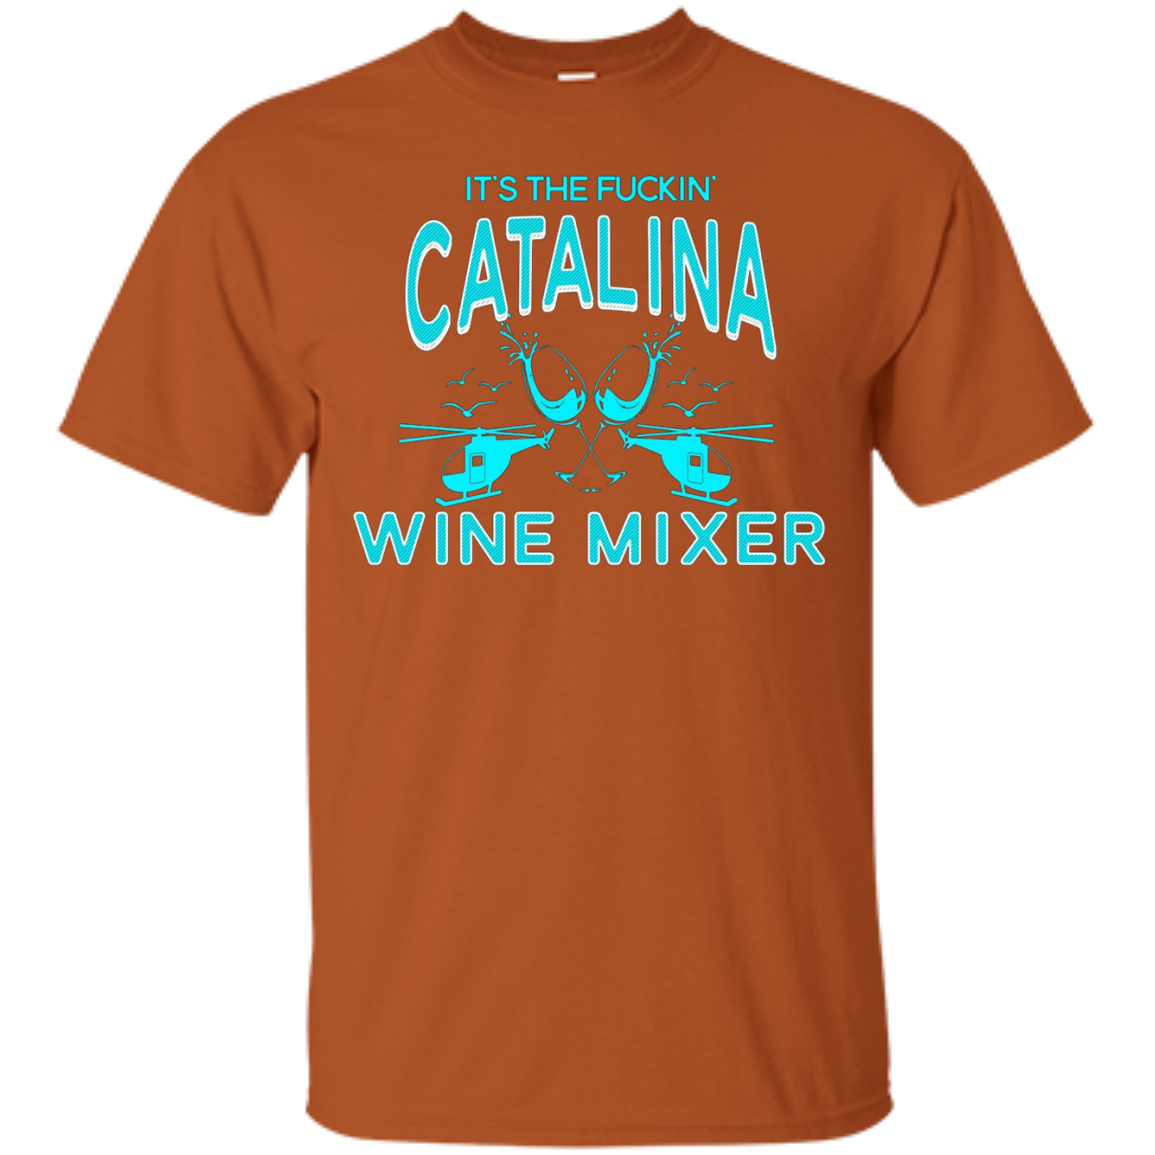 It's The Fucking Catalina Wine Mixer Teekiwi - T-Shirt